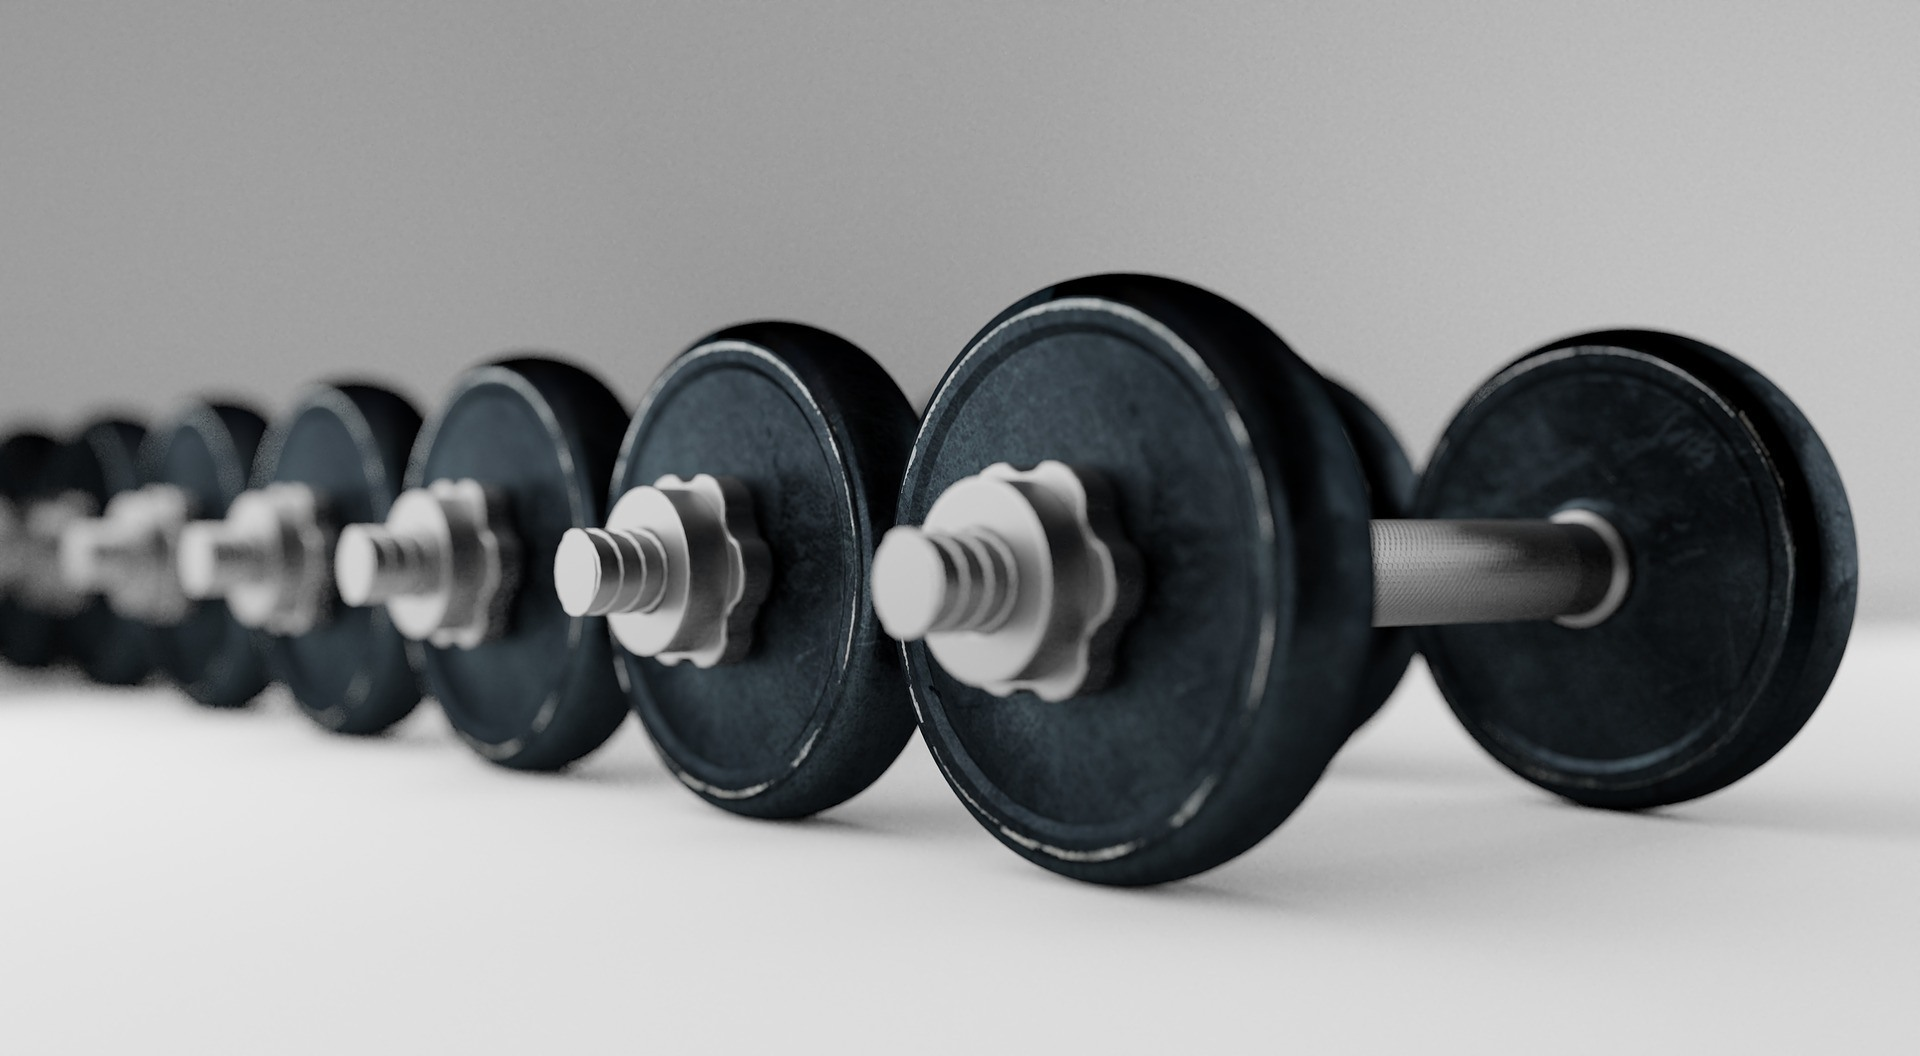 image of free weights